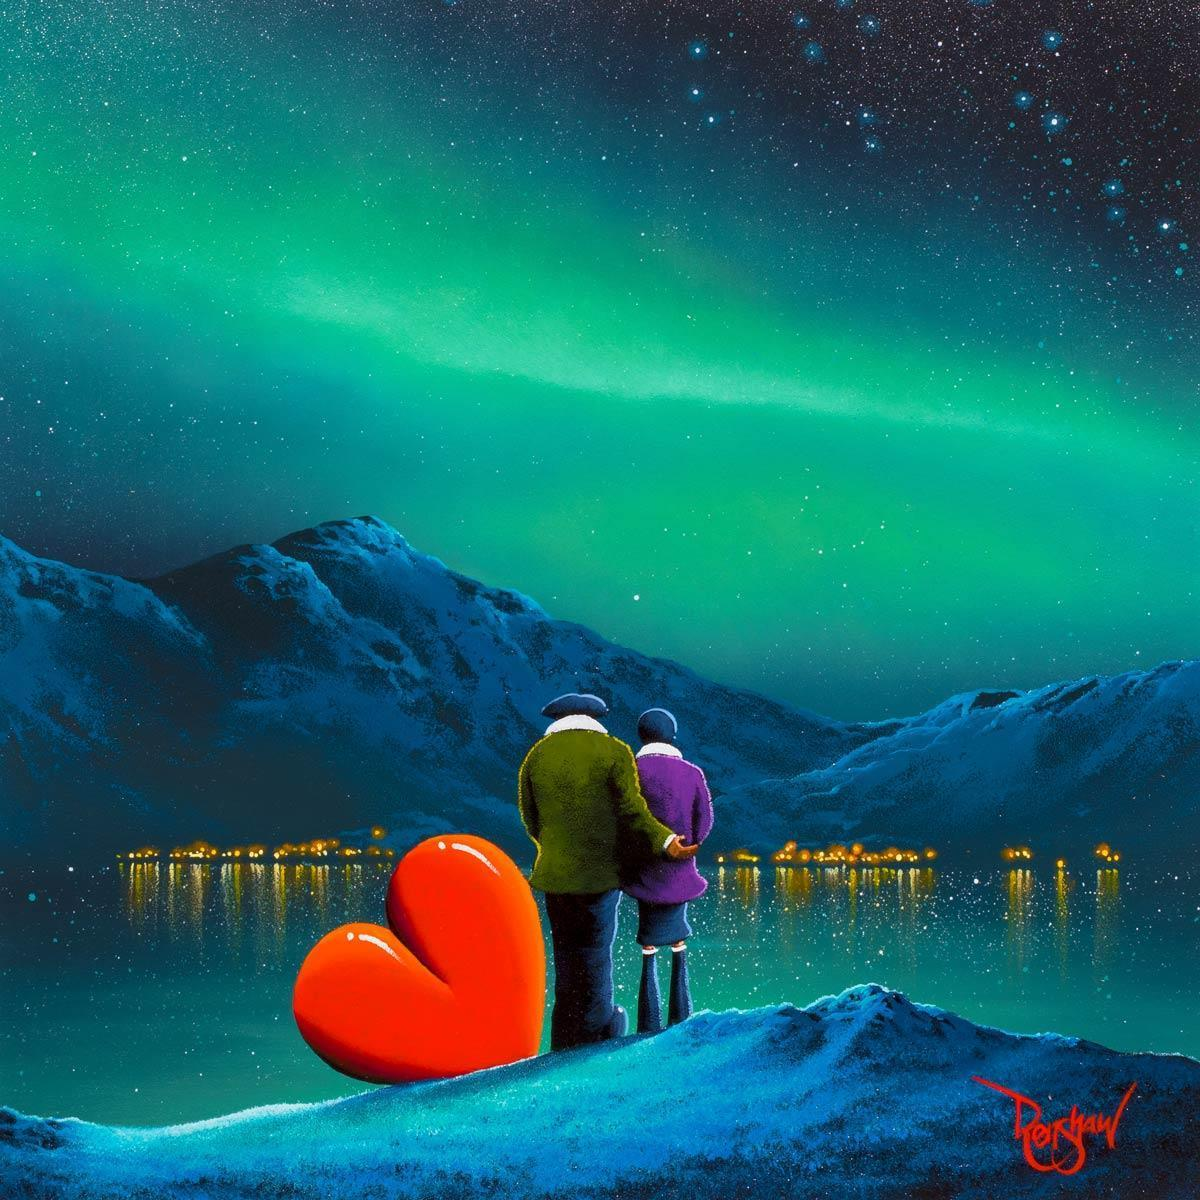 Stargazing - Original - SOLD David Renshaw